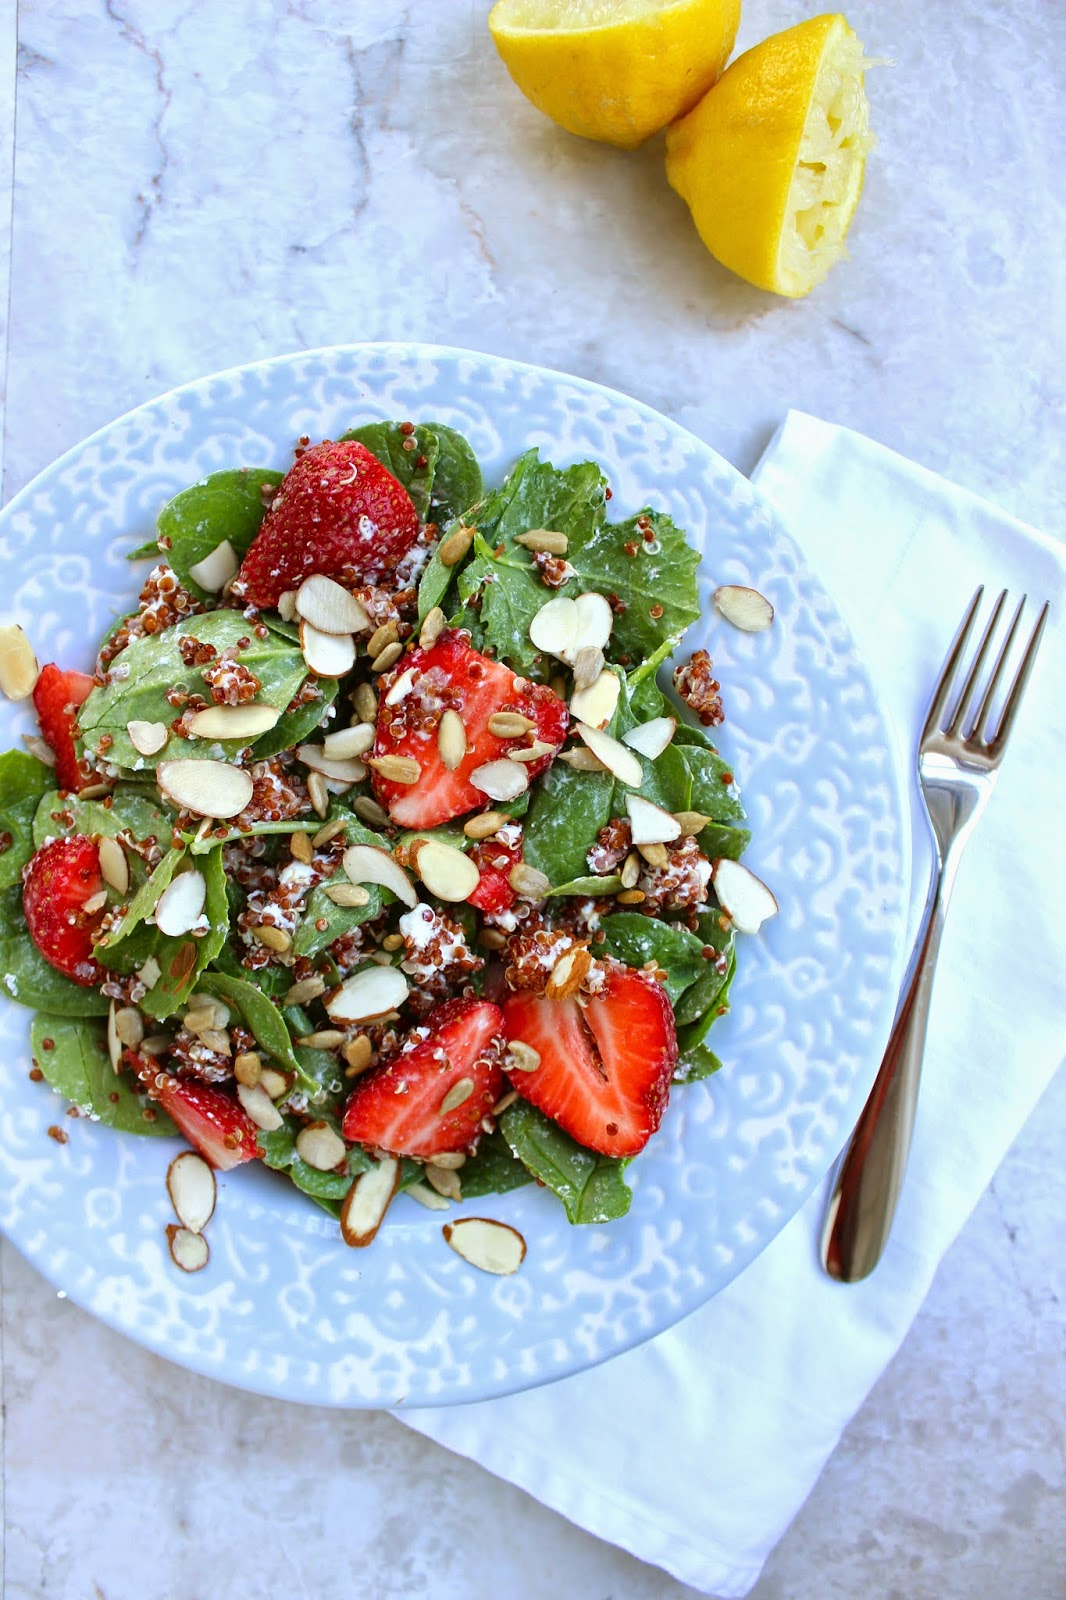 ... spinach strawberry salad with coconut quinoa and honey lemon dressing